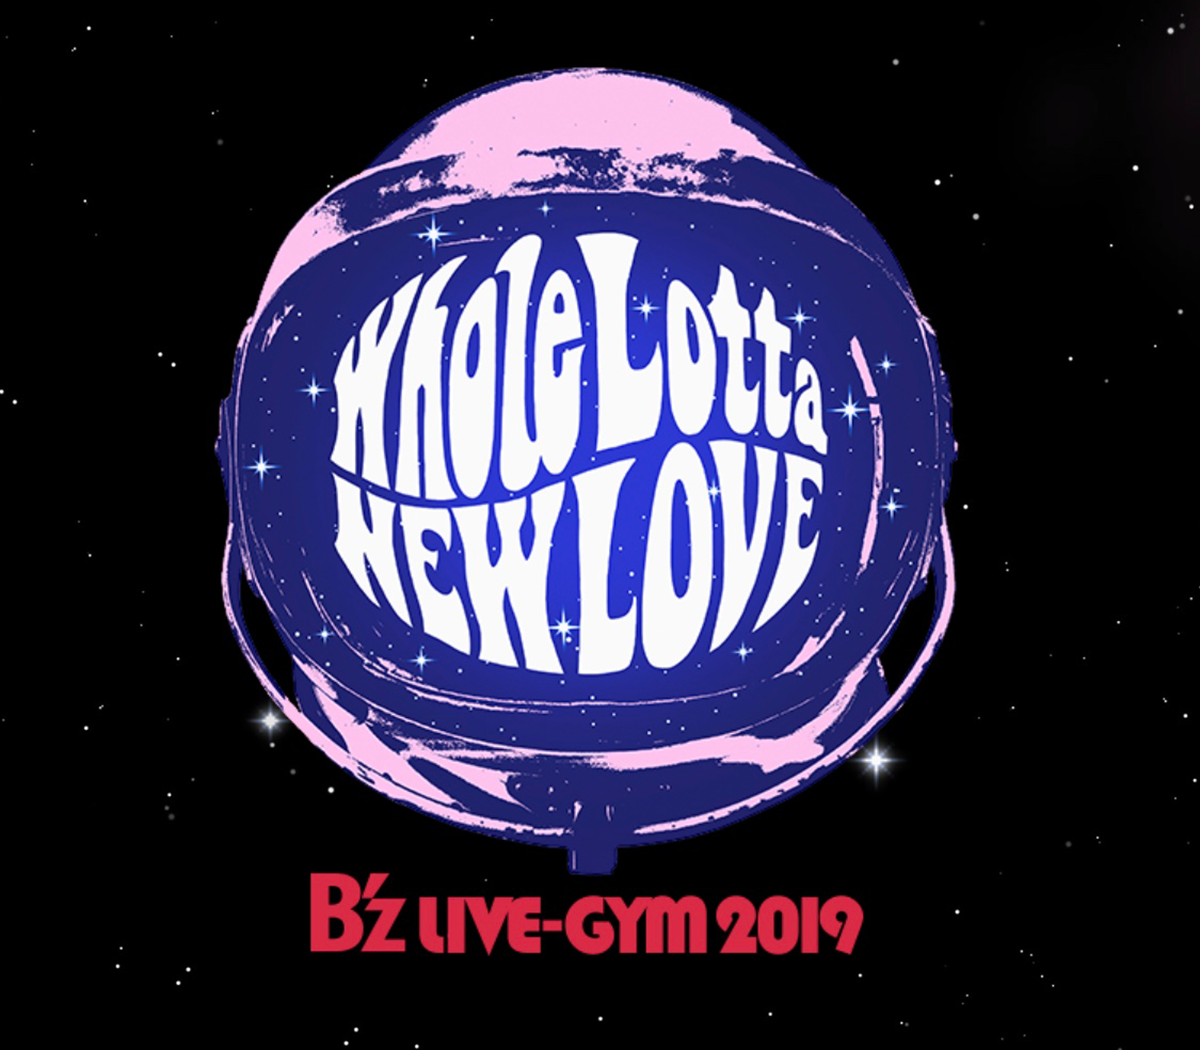 『B'z LIVE-GYM 2019 -Whole Lotta NEW LOVE-』のツアーロゴ